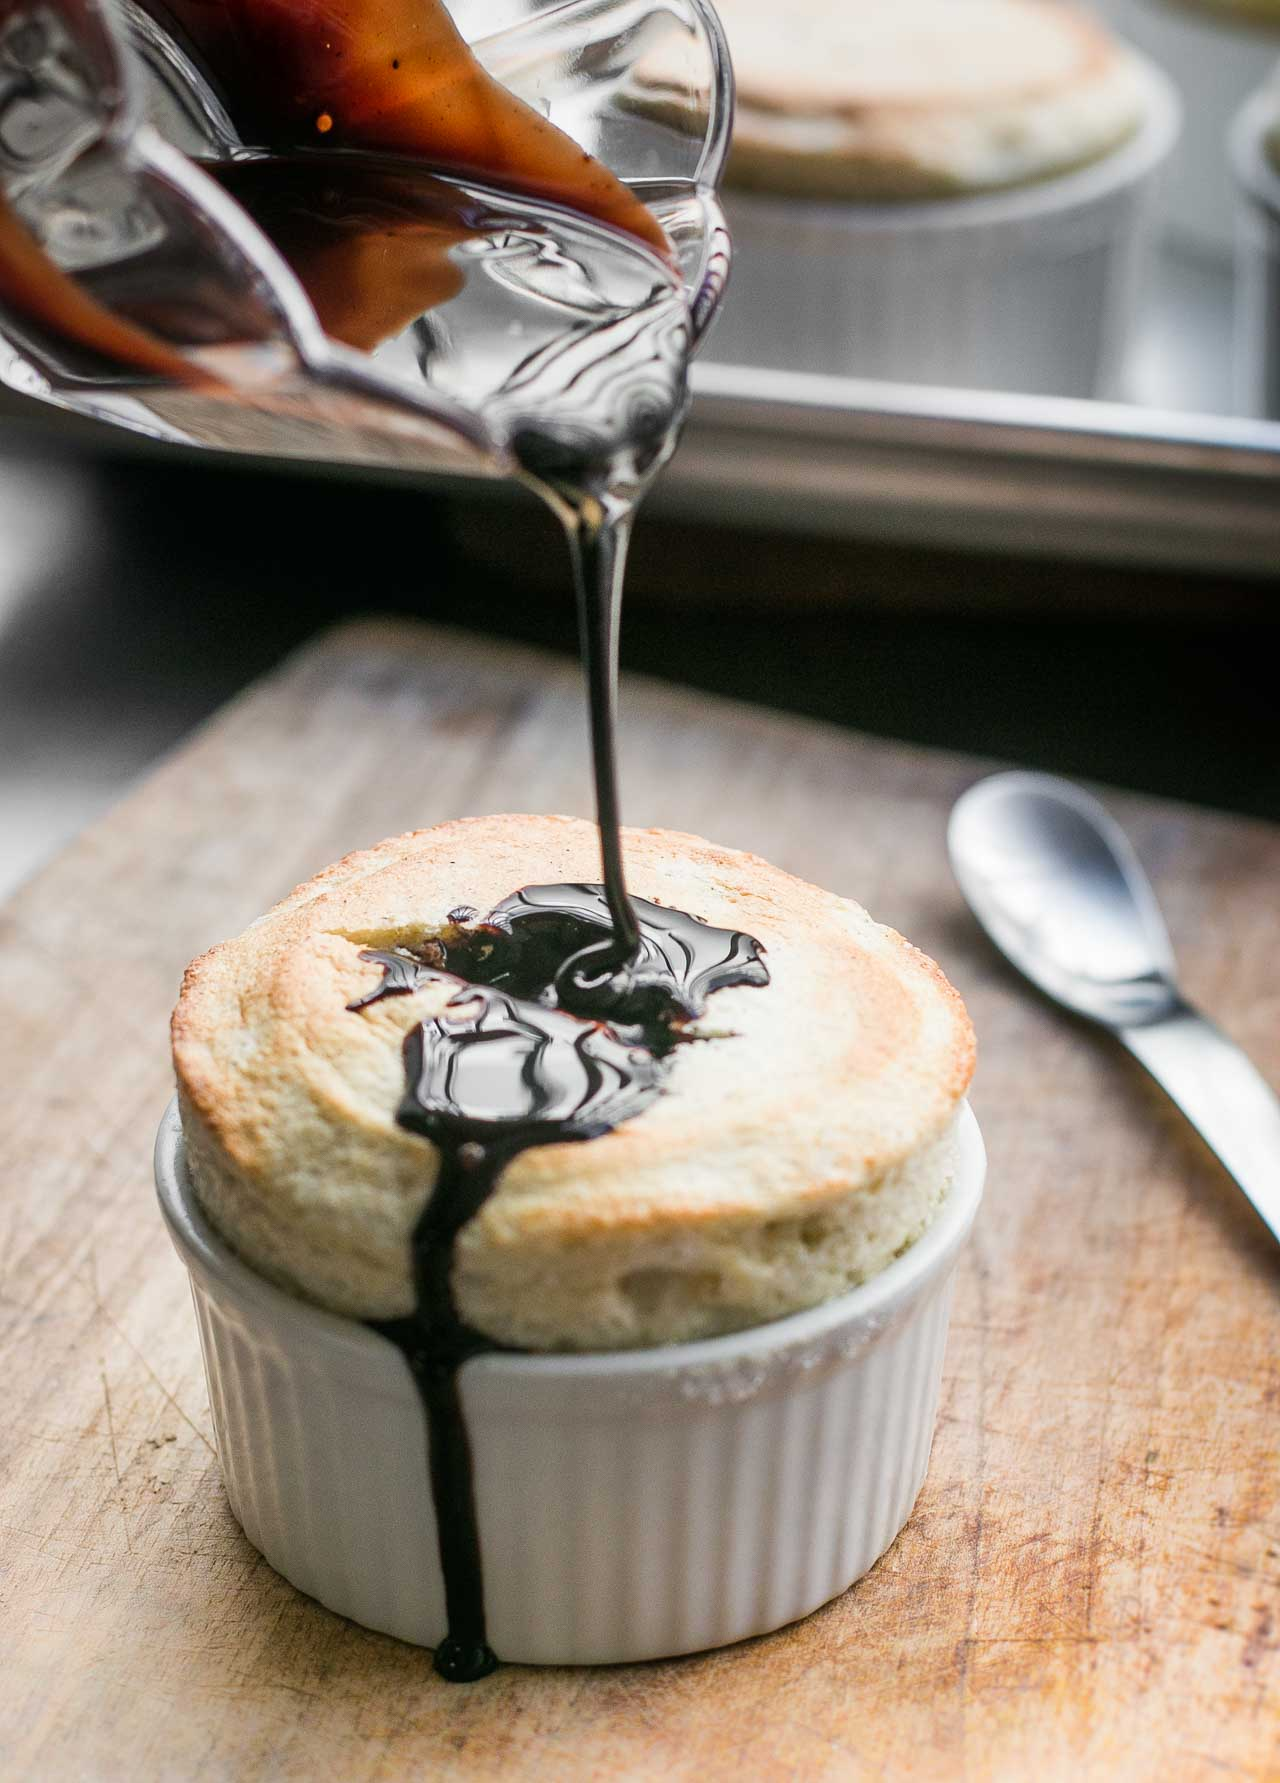 A classic soufflé with French liqueur and a dose of dark chocolate